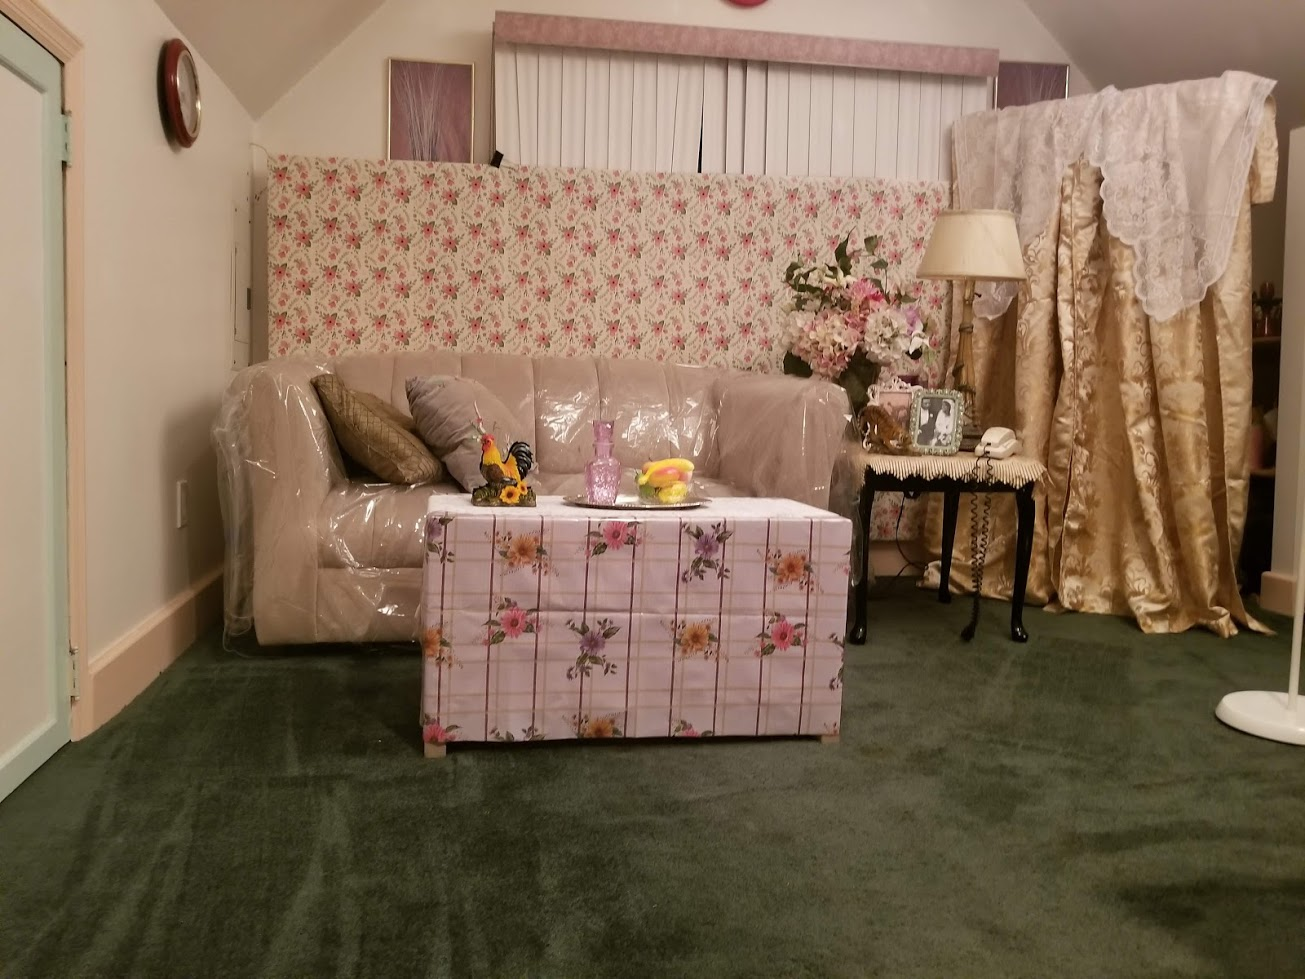 This set was built to mimic the aesthetic of what is known to West Indian's as The Front Room.